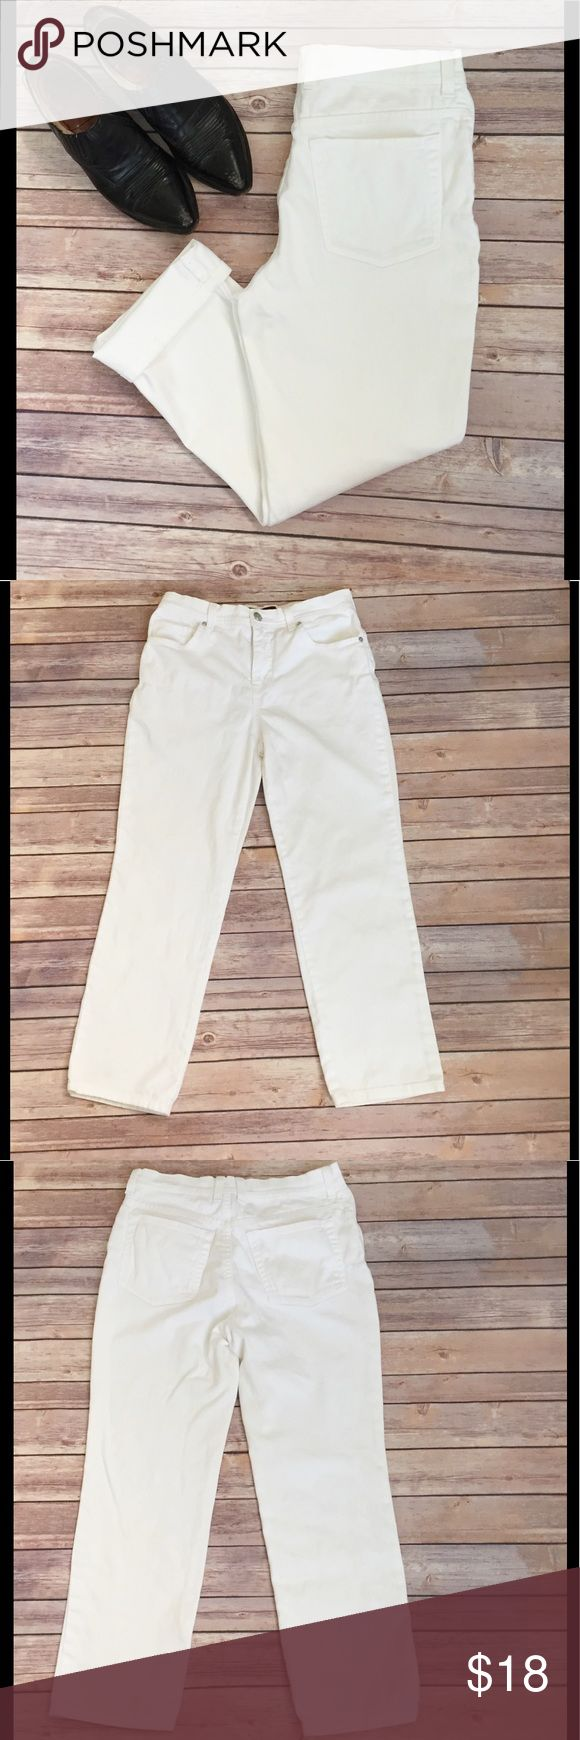 "White Jeans Classic GV Summer Boho Womens 8P 8 P Classic, pure white jeans by Gloria Vanderbilt. Pair them with a cute top and you are set! Worn in just enough to make them nice and soft. Size 8 Petite Short. Measurements lay flat are......waist 14"", front rise 10.5"", and inseam 26"". Boho, festival, preppy, hipster. Good condition. Offers always welcome and thanks for looking 🌼🌼🌸🌸 Gloria Vanderbilt Jeans"